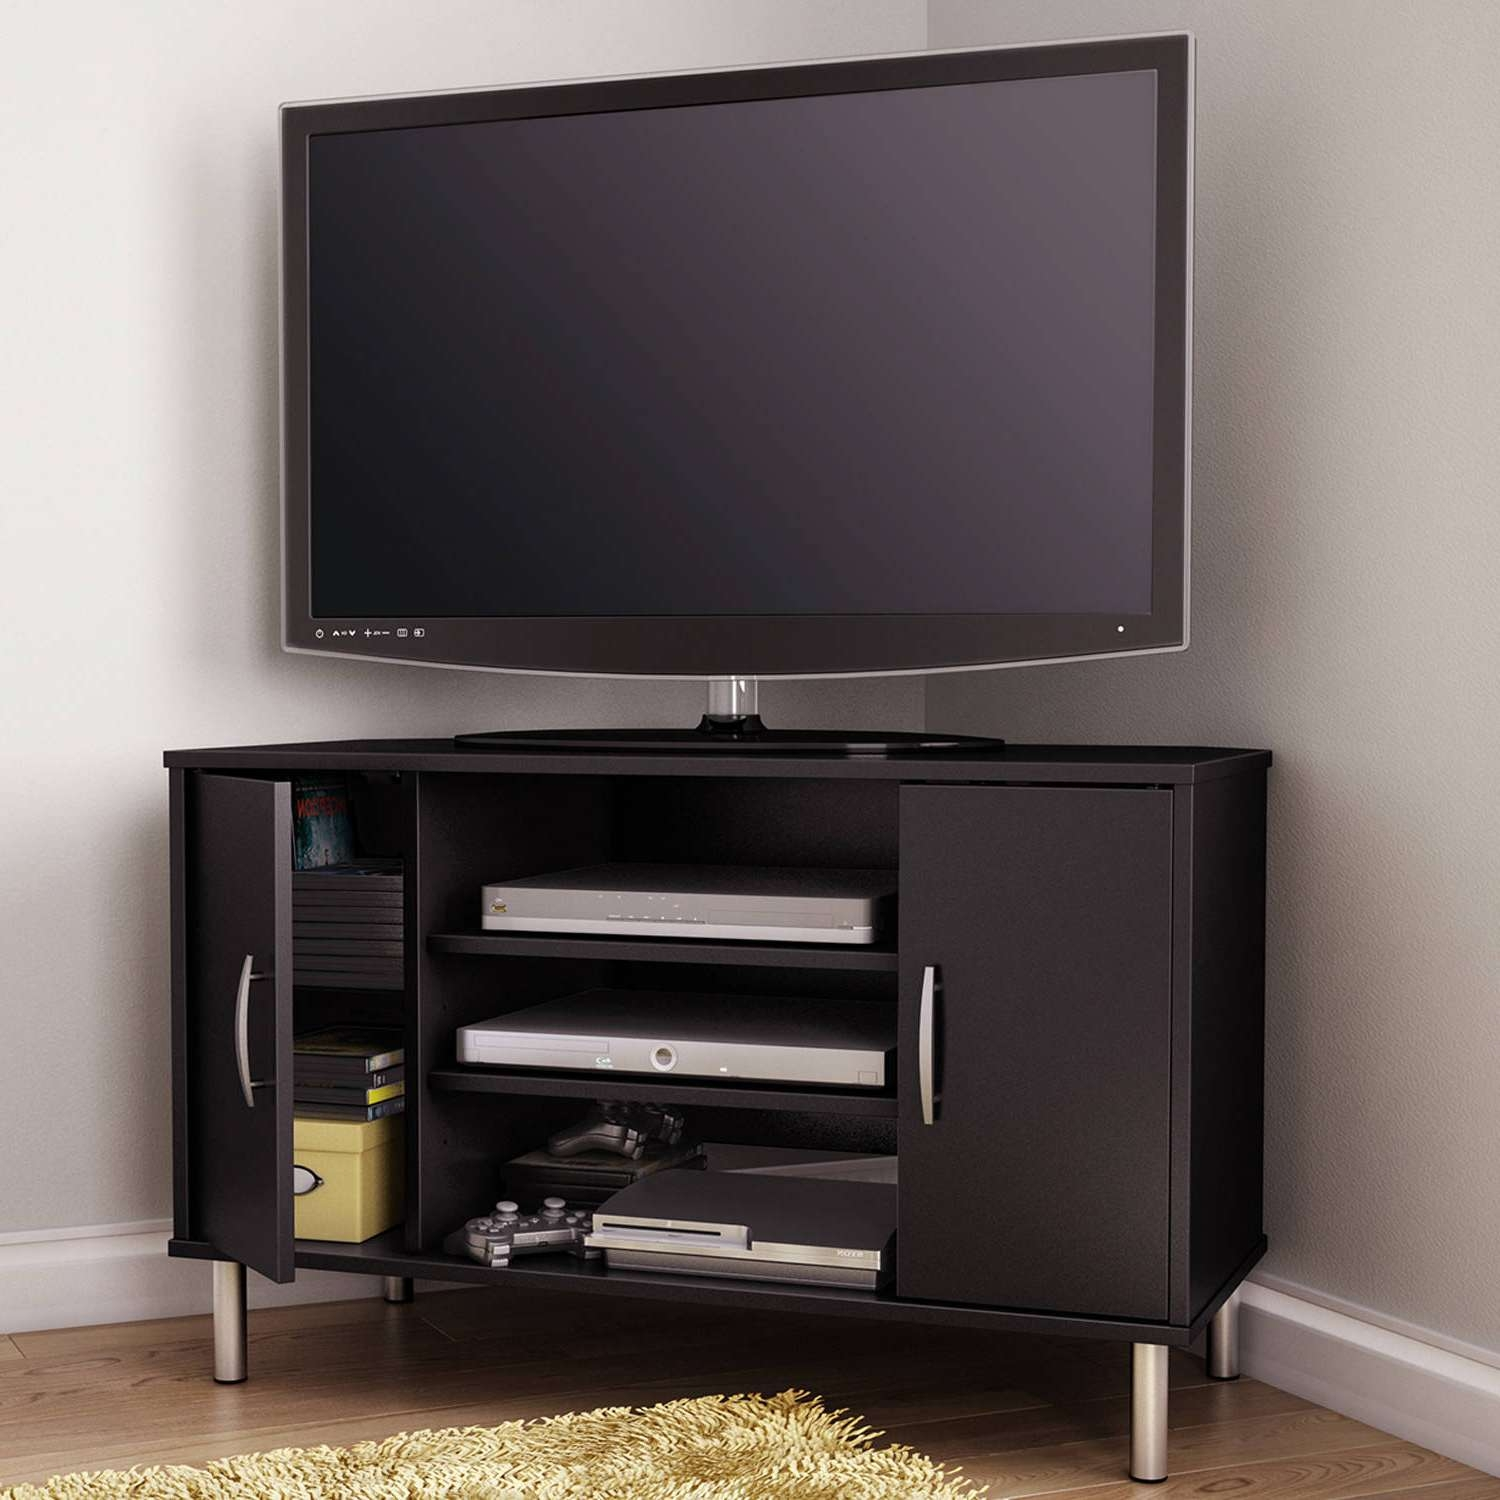 Storage Cabinets Ideas : Corner Tv Cabinet Beech Choosing The Throughout Beech Tv Stands (View 14 of 15)